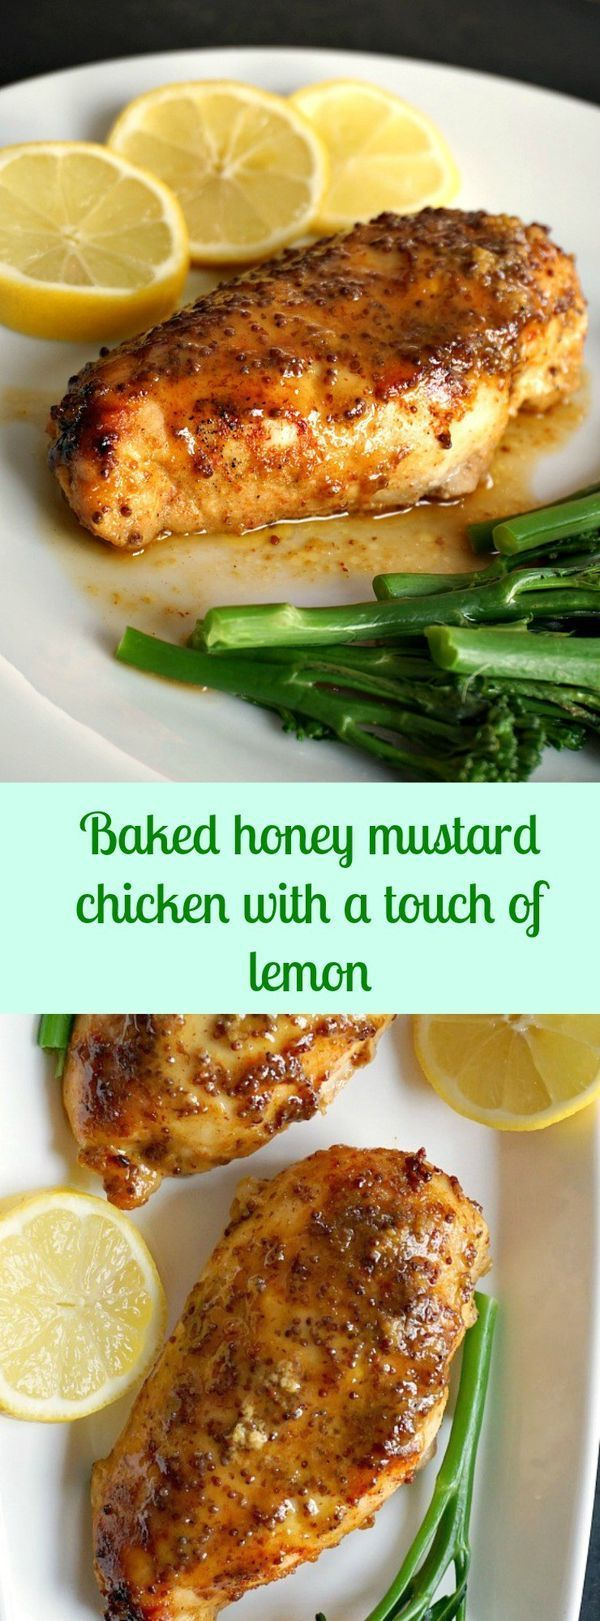 Baked honey mustard chicken with a touch of lemon, a fantastic meal for two. Healthy, easy to make, and so delicious. Why not give it a try for Valentine's Day?